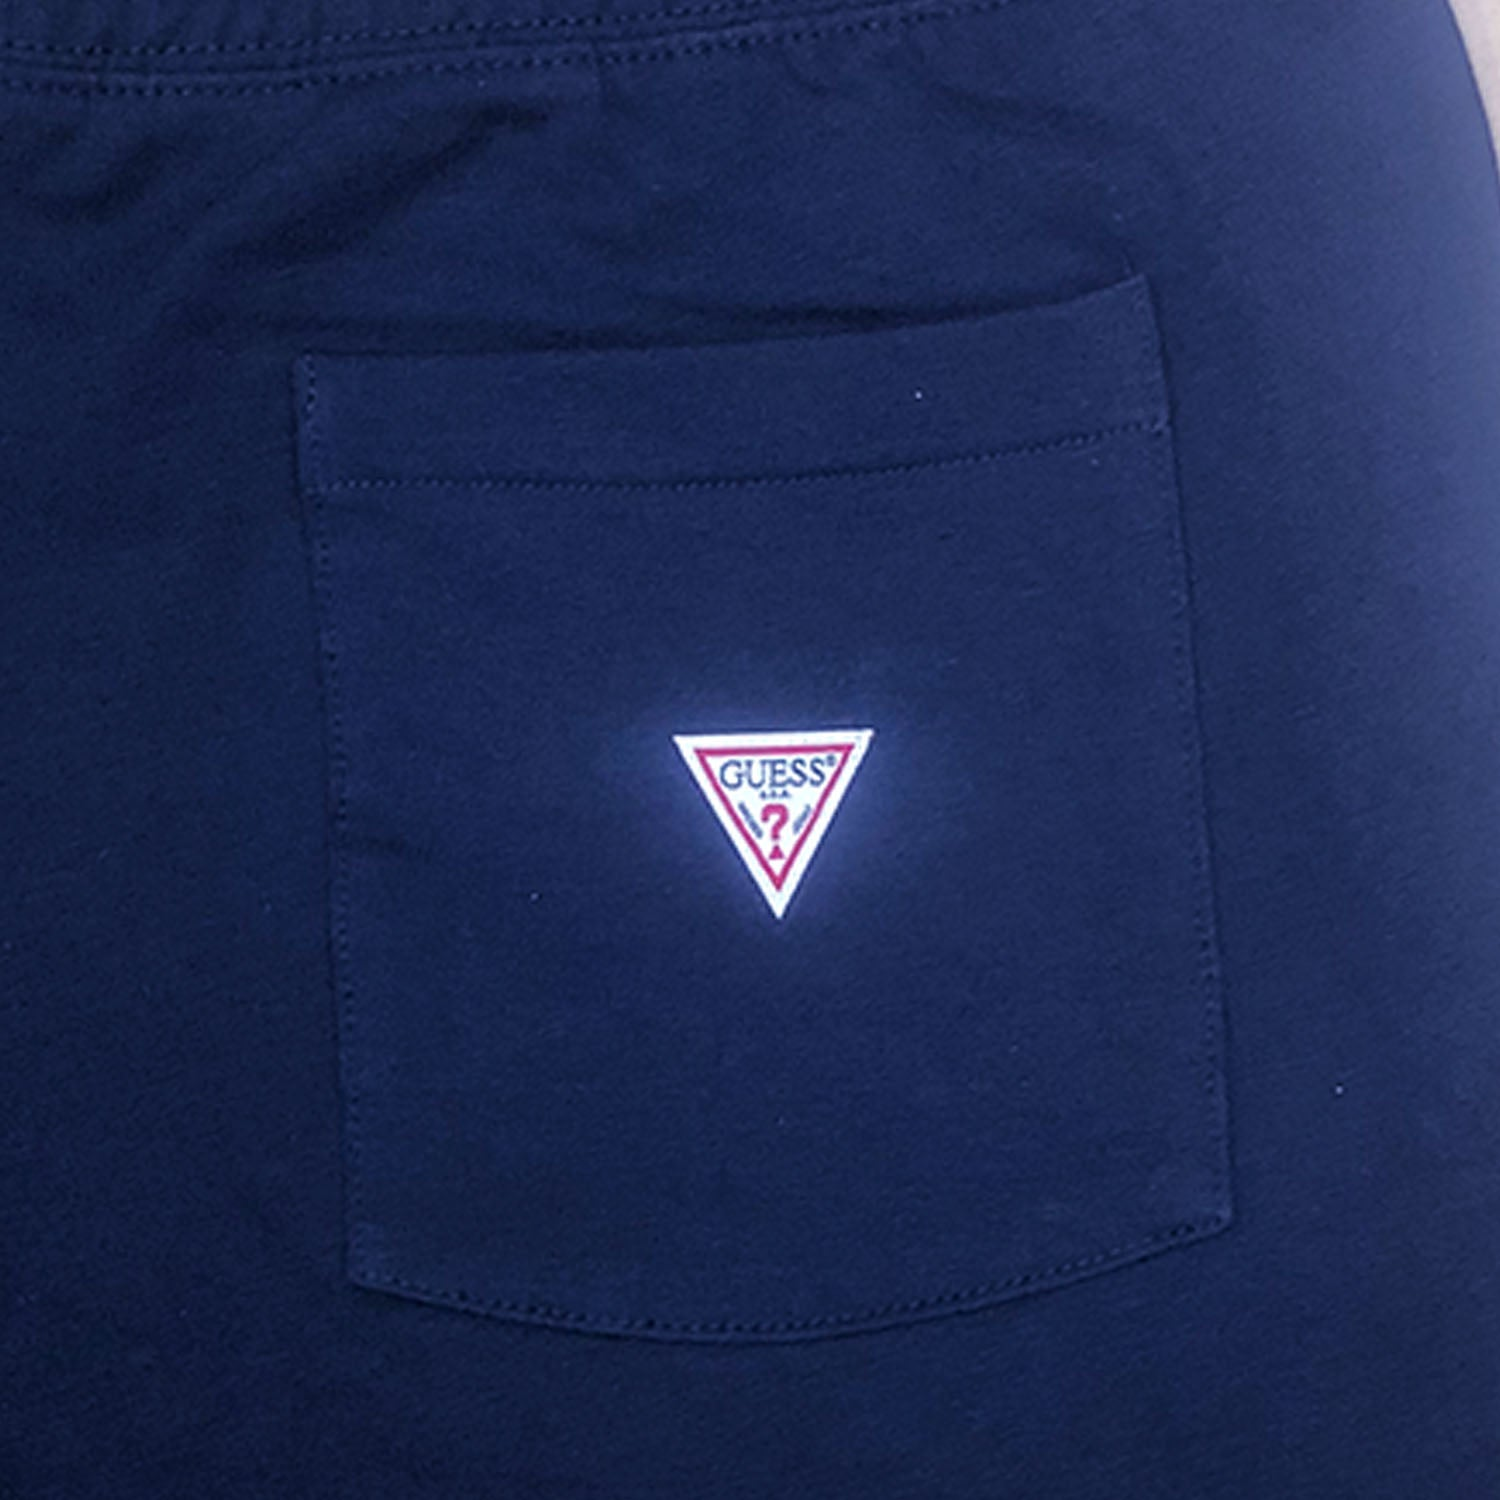 Guess Back Pocket Logo Sweatpants